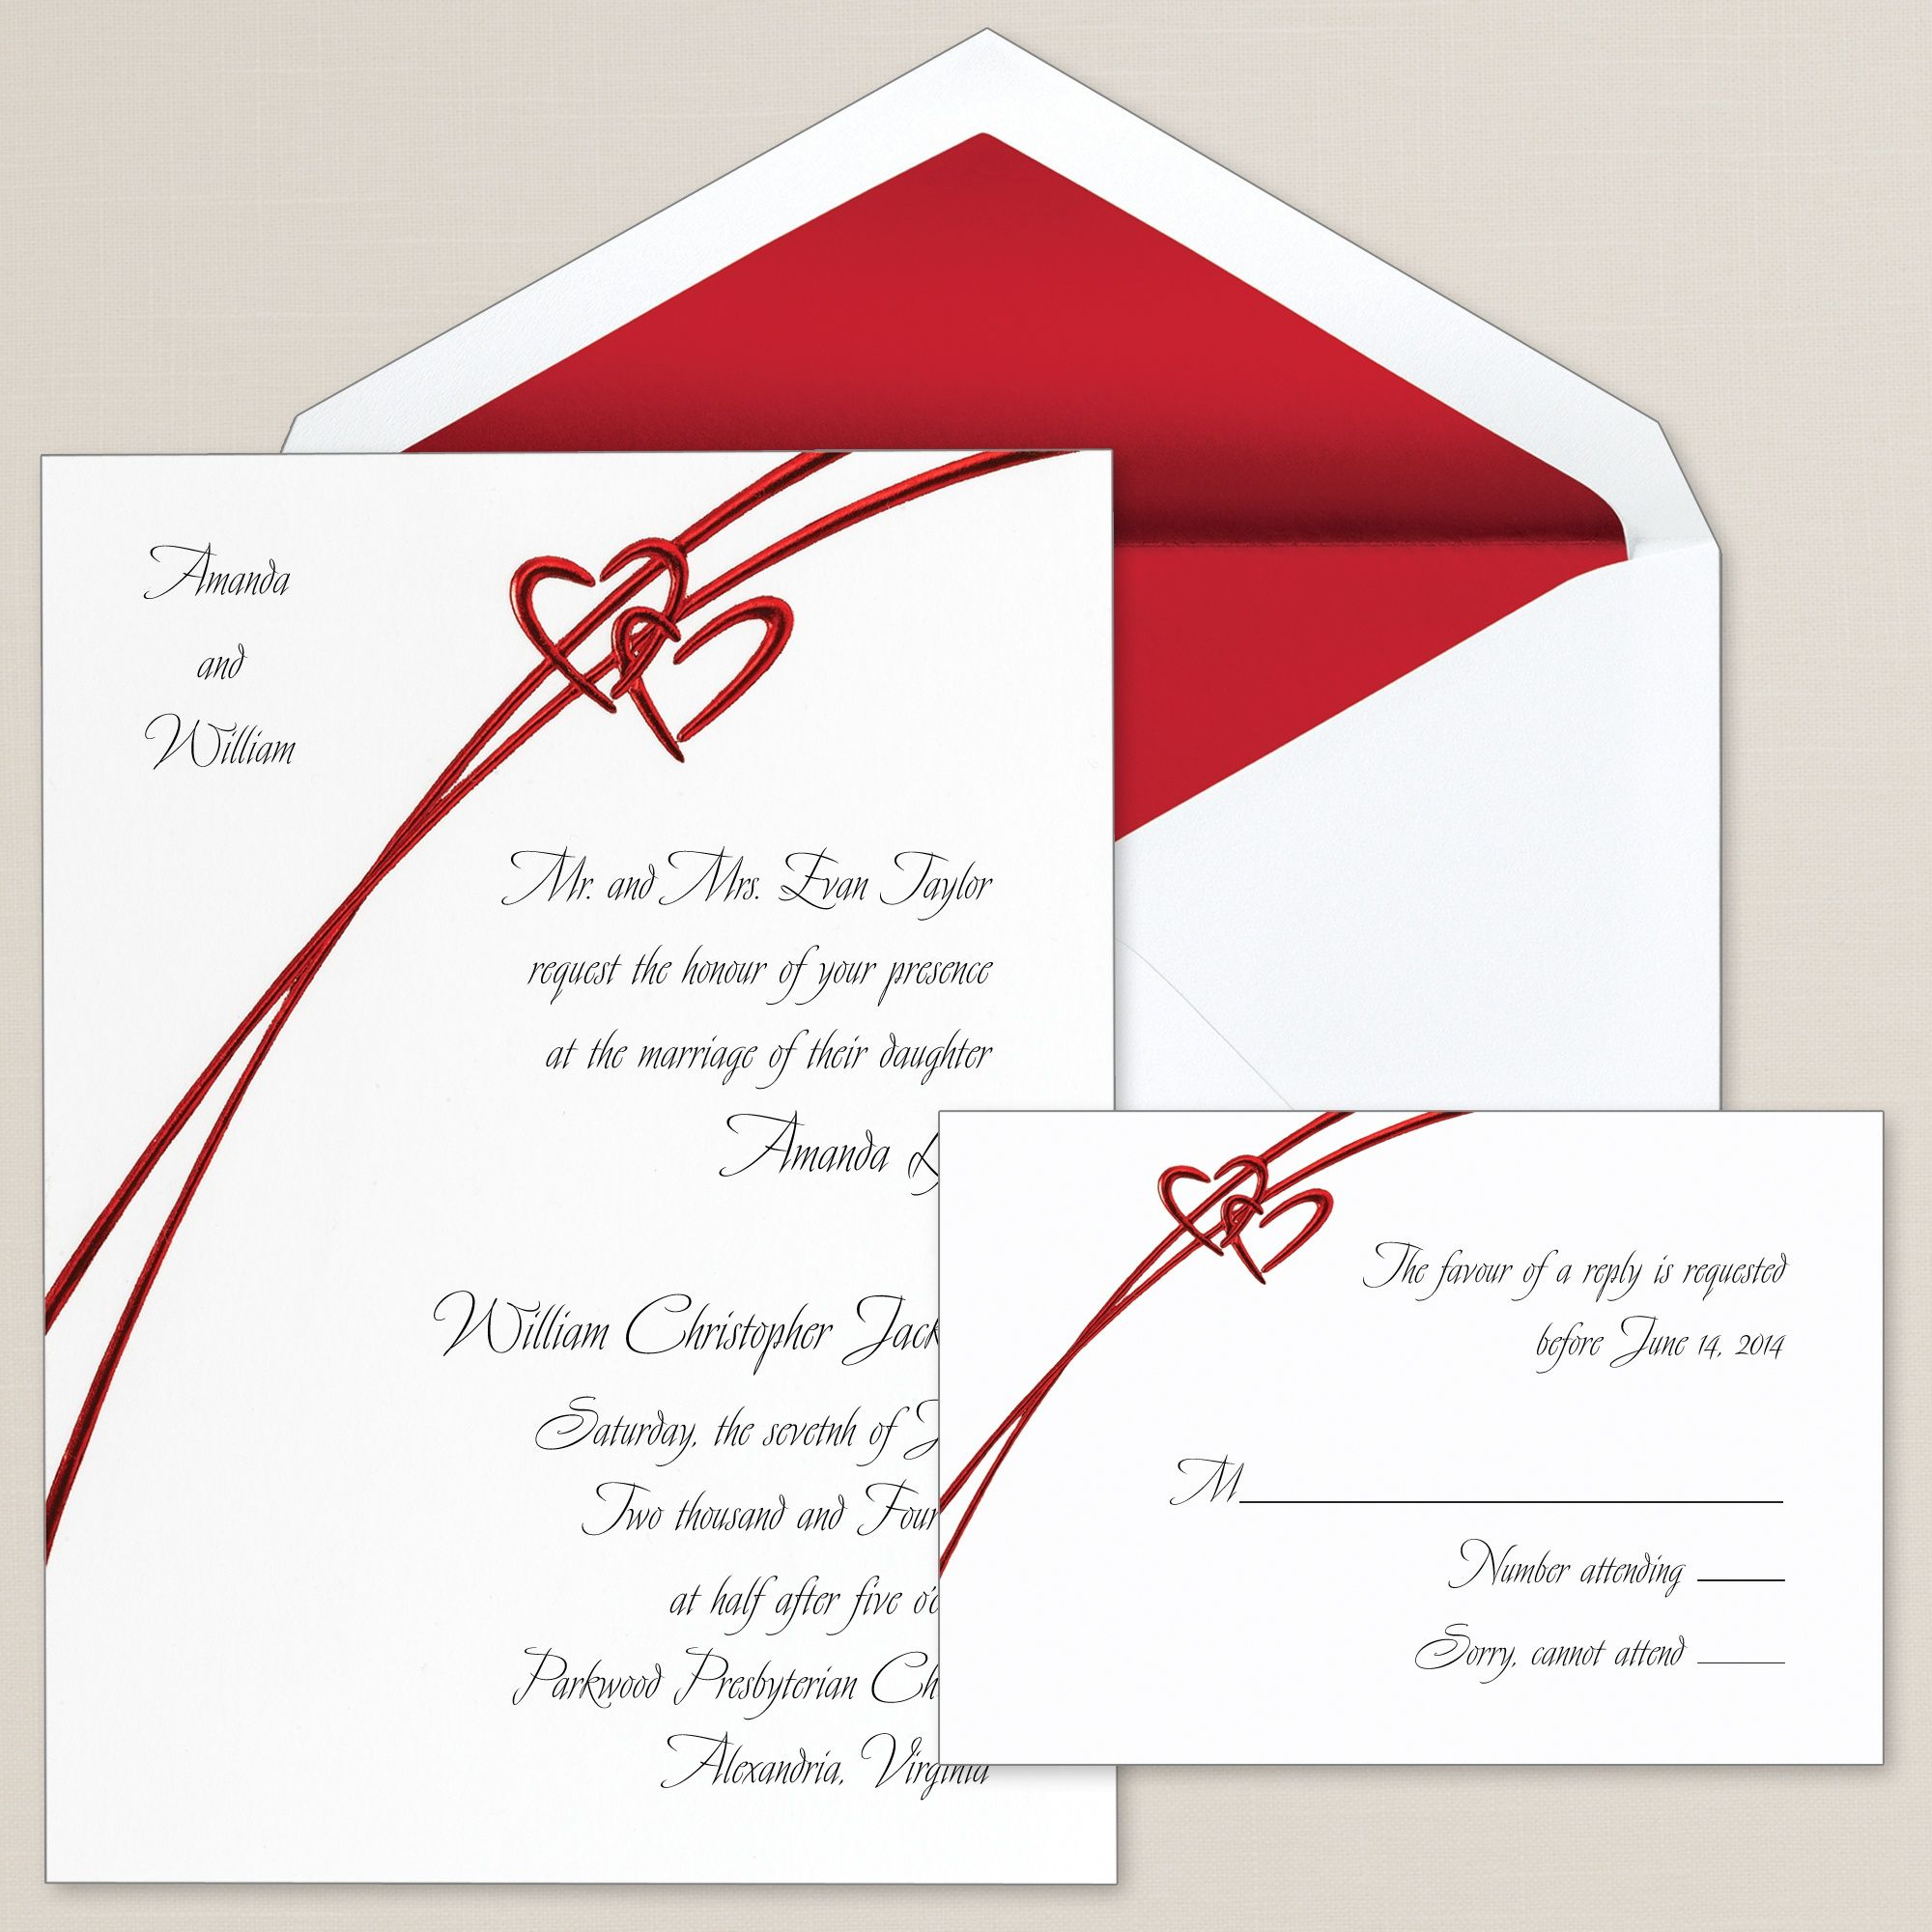 Soaring Hearts Wedding Invitation | #exclusivelyweddings | vow ...